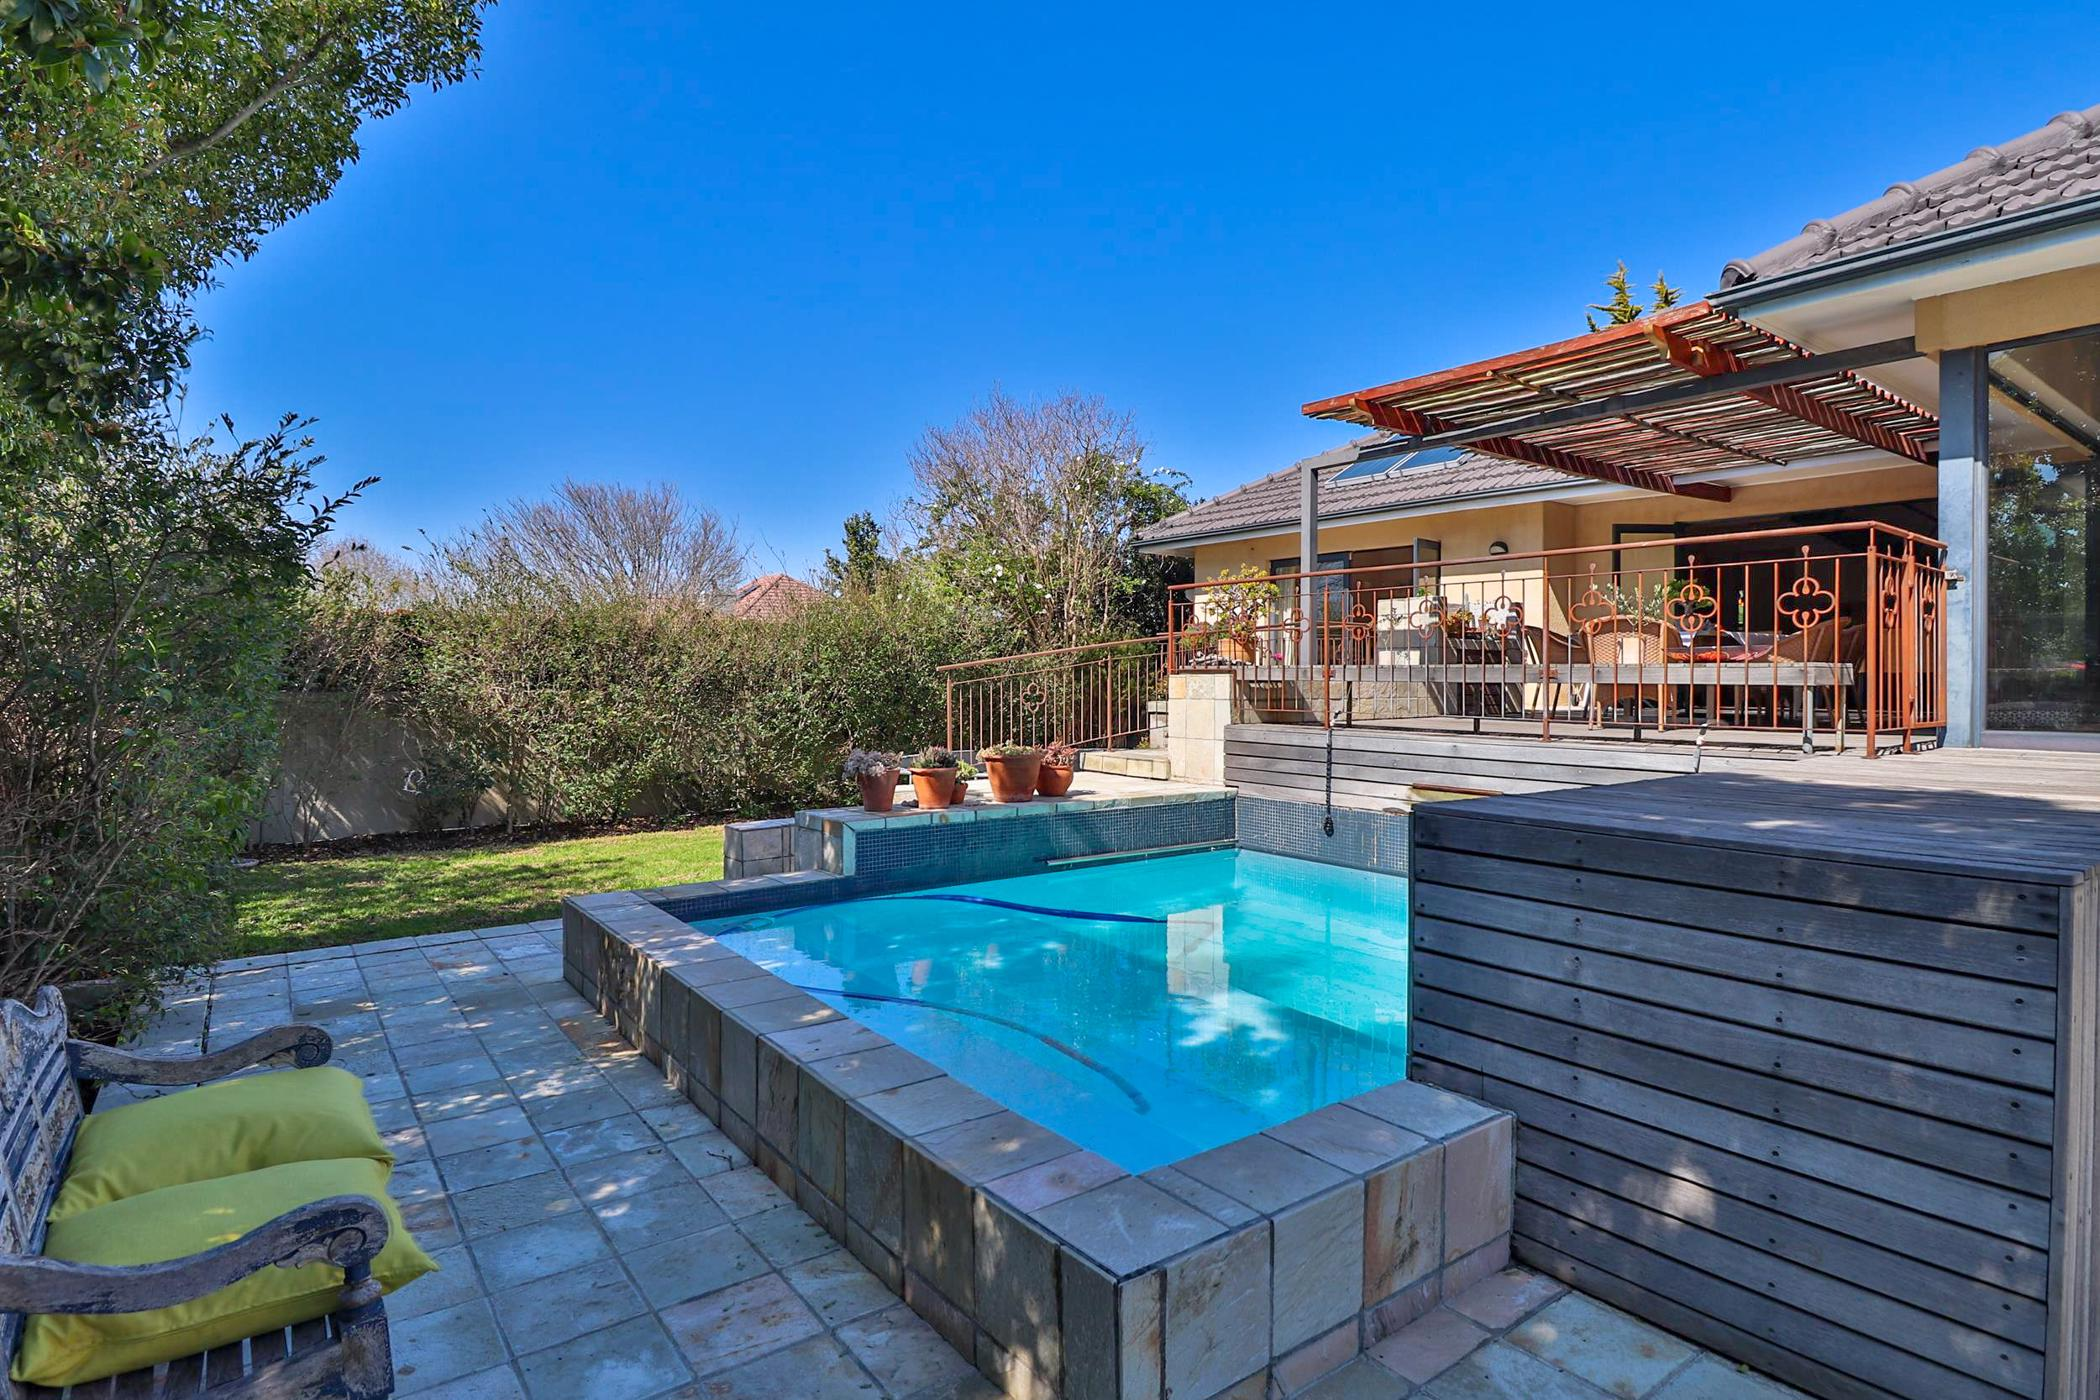 4 bedroom house for sale in Claremont Upper